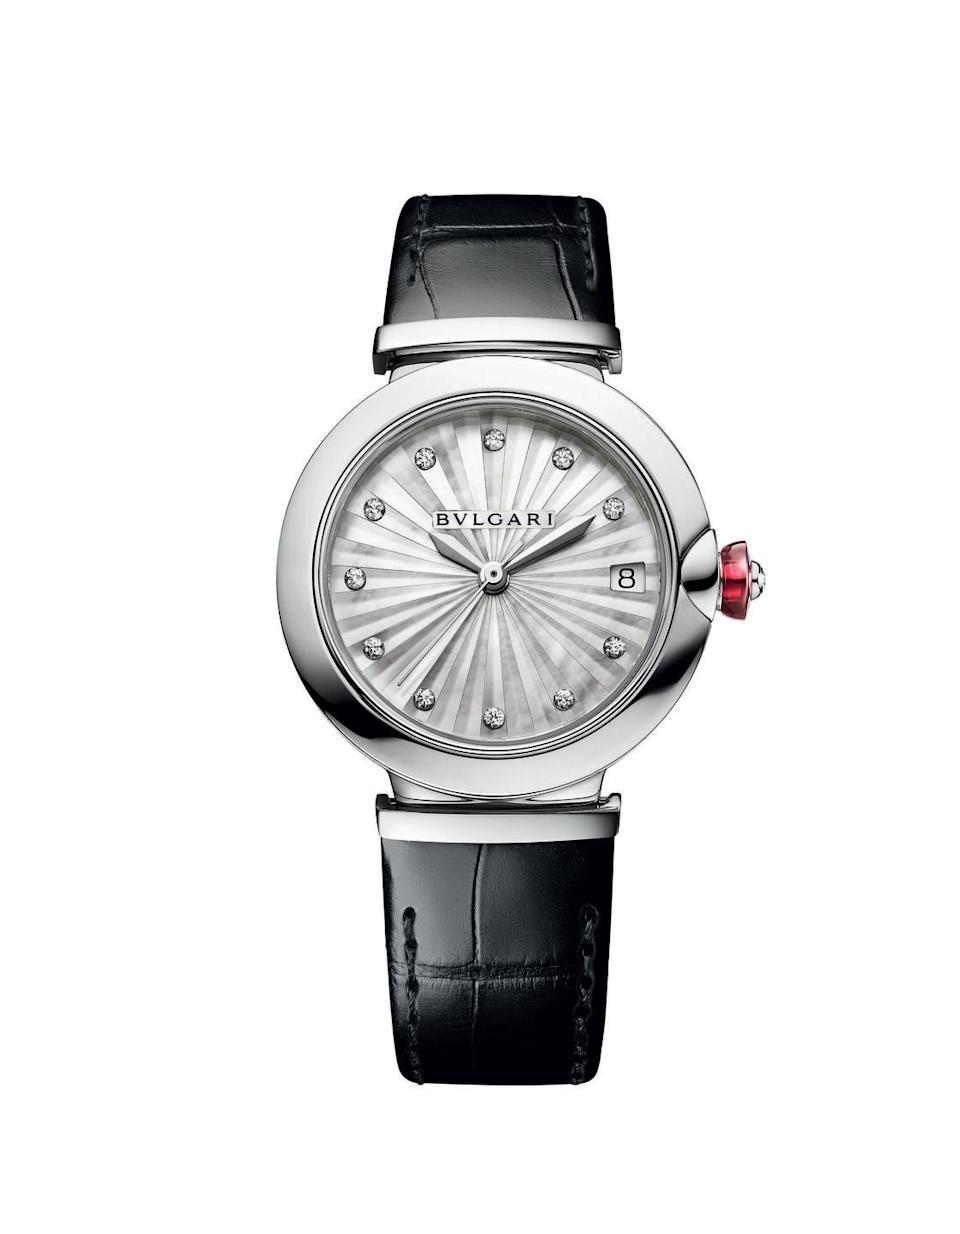 "<p><a class=""link rapid-noclick-resp"" href=""https://go.redirectingat.com?id=127X1599956&url=https%3A%2F%2Fwww.bulgari.com%2Fen-gb%2F103478.html&sref=https%3A%2F%2Fwww.harpersbazaar.com%2Fuk%2Ffashion%2Fjewellery-watches%2Fg37474%2Fbest-womens-watches%2F"" rel=""nofollow noopener"" target=""_blank"" data-ylk=""slk:SHOP NOW"">SHOP NOW</a></p><p>First launched in 2014, Bulgari's Lucea is subtle enough to be an everyday timepiece but also dressy enough to complement a favourite cocktail dress. </p><p>This year's Lucea stays true to the radiant styling that inspired its name: its luminous dial is constructed with slivers of mother-of-pearl, assembled to create the impression of movement and three-dimensional volume; a sparkling diamond sits at each hour marker; and a polished pink cabochon gemstone glows in its crown. </p><p>Lucea watch, £4,820, Bulgari</p>"